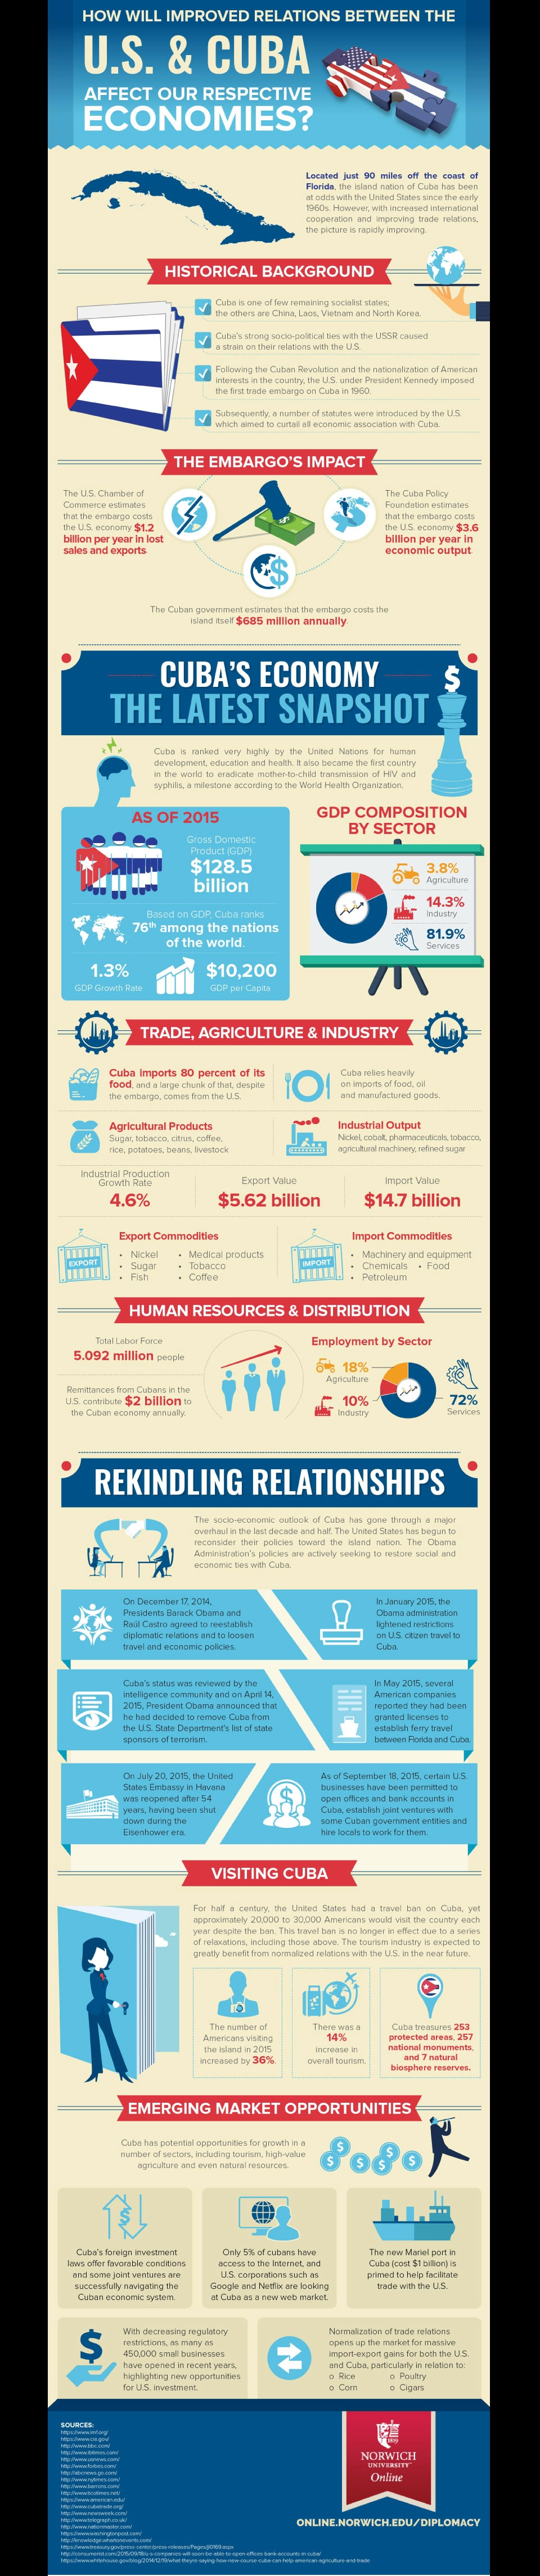 Improved Relations Infographic Image